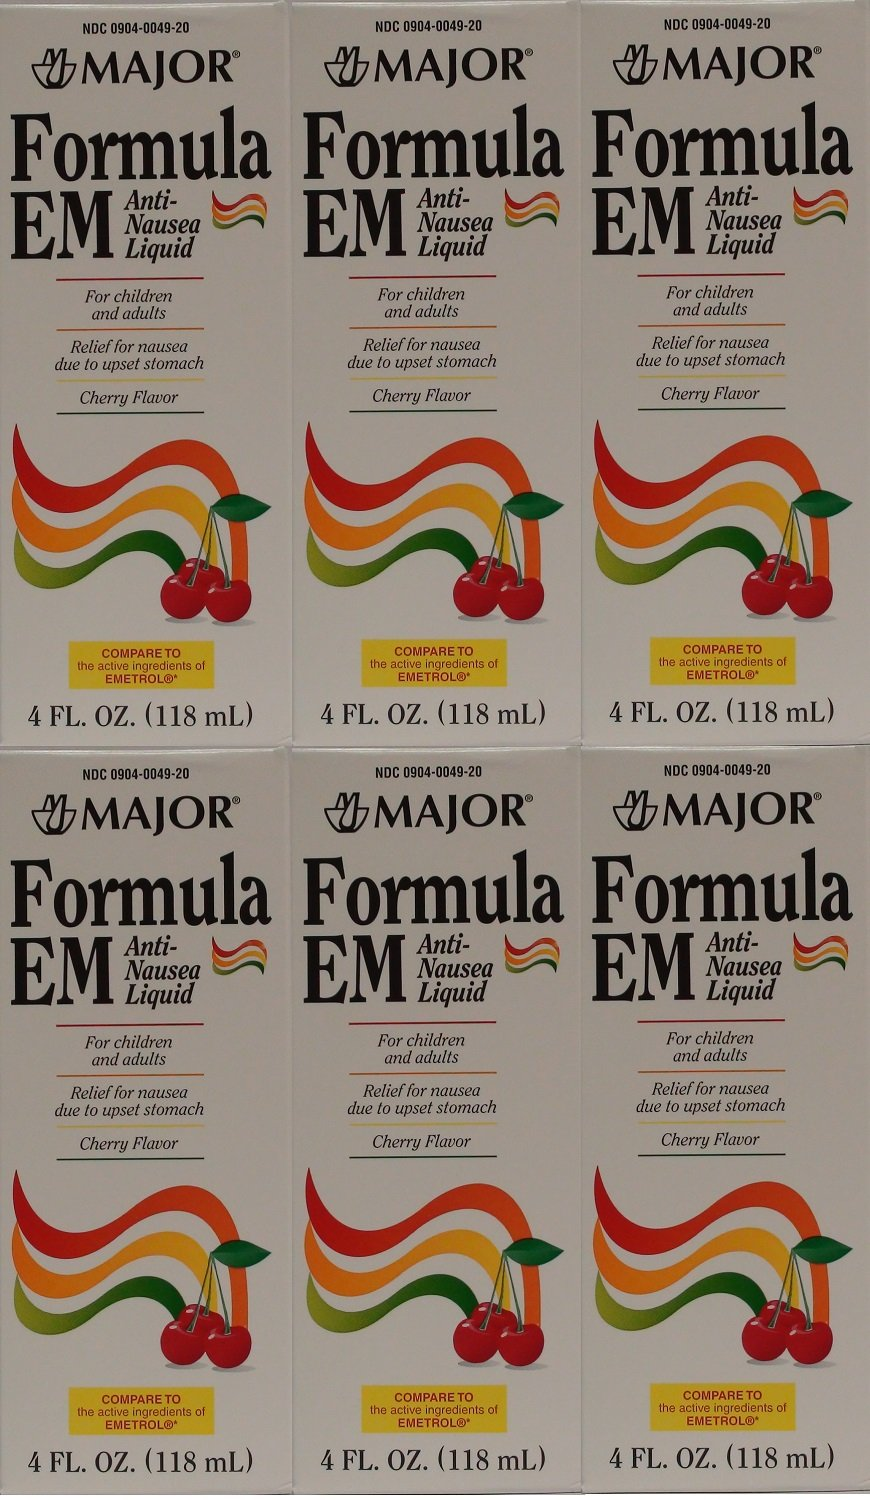 Formula EM Generic for Emetrol Nausea & Upset Stomach Relief Cherry Flavor 4 oz. Bottle Pack of 6 Total 24 oz. by Major Pharmaceuticals